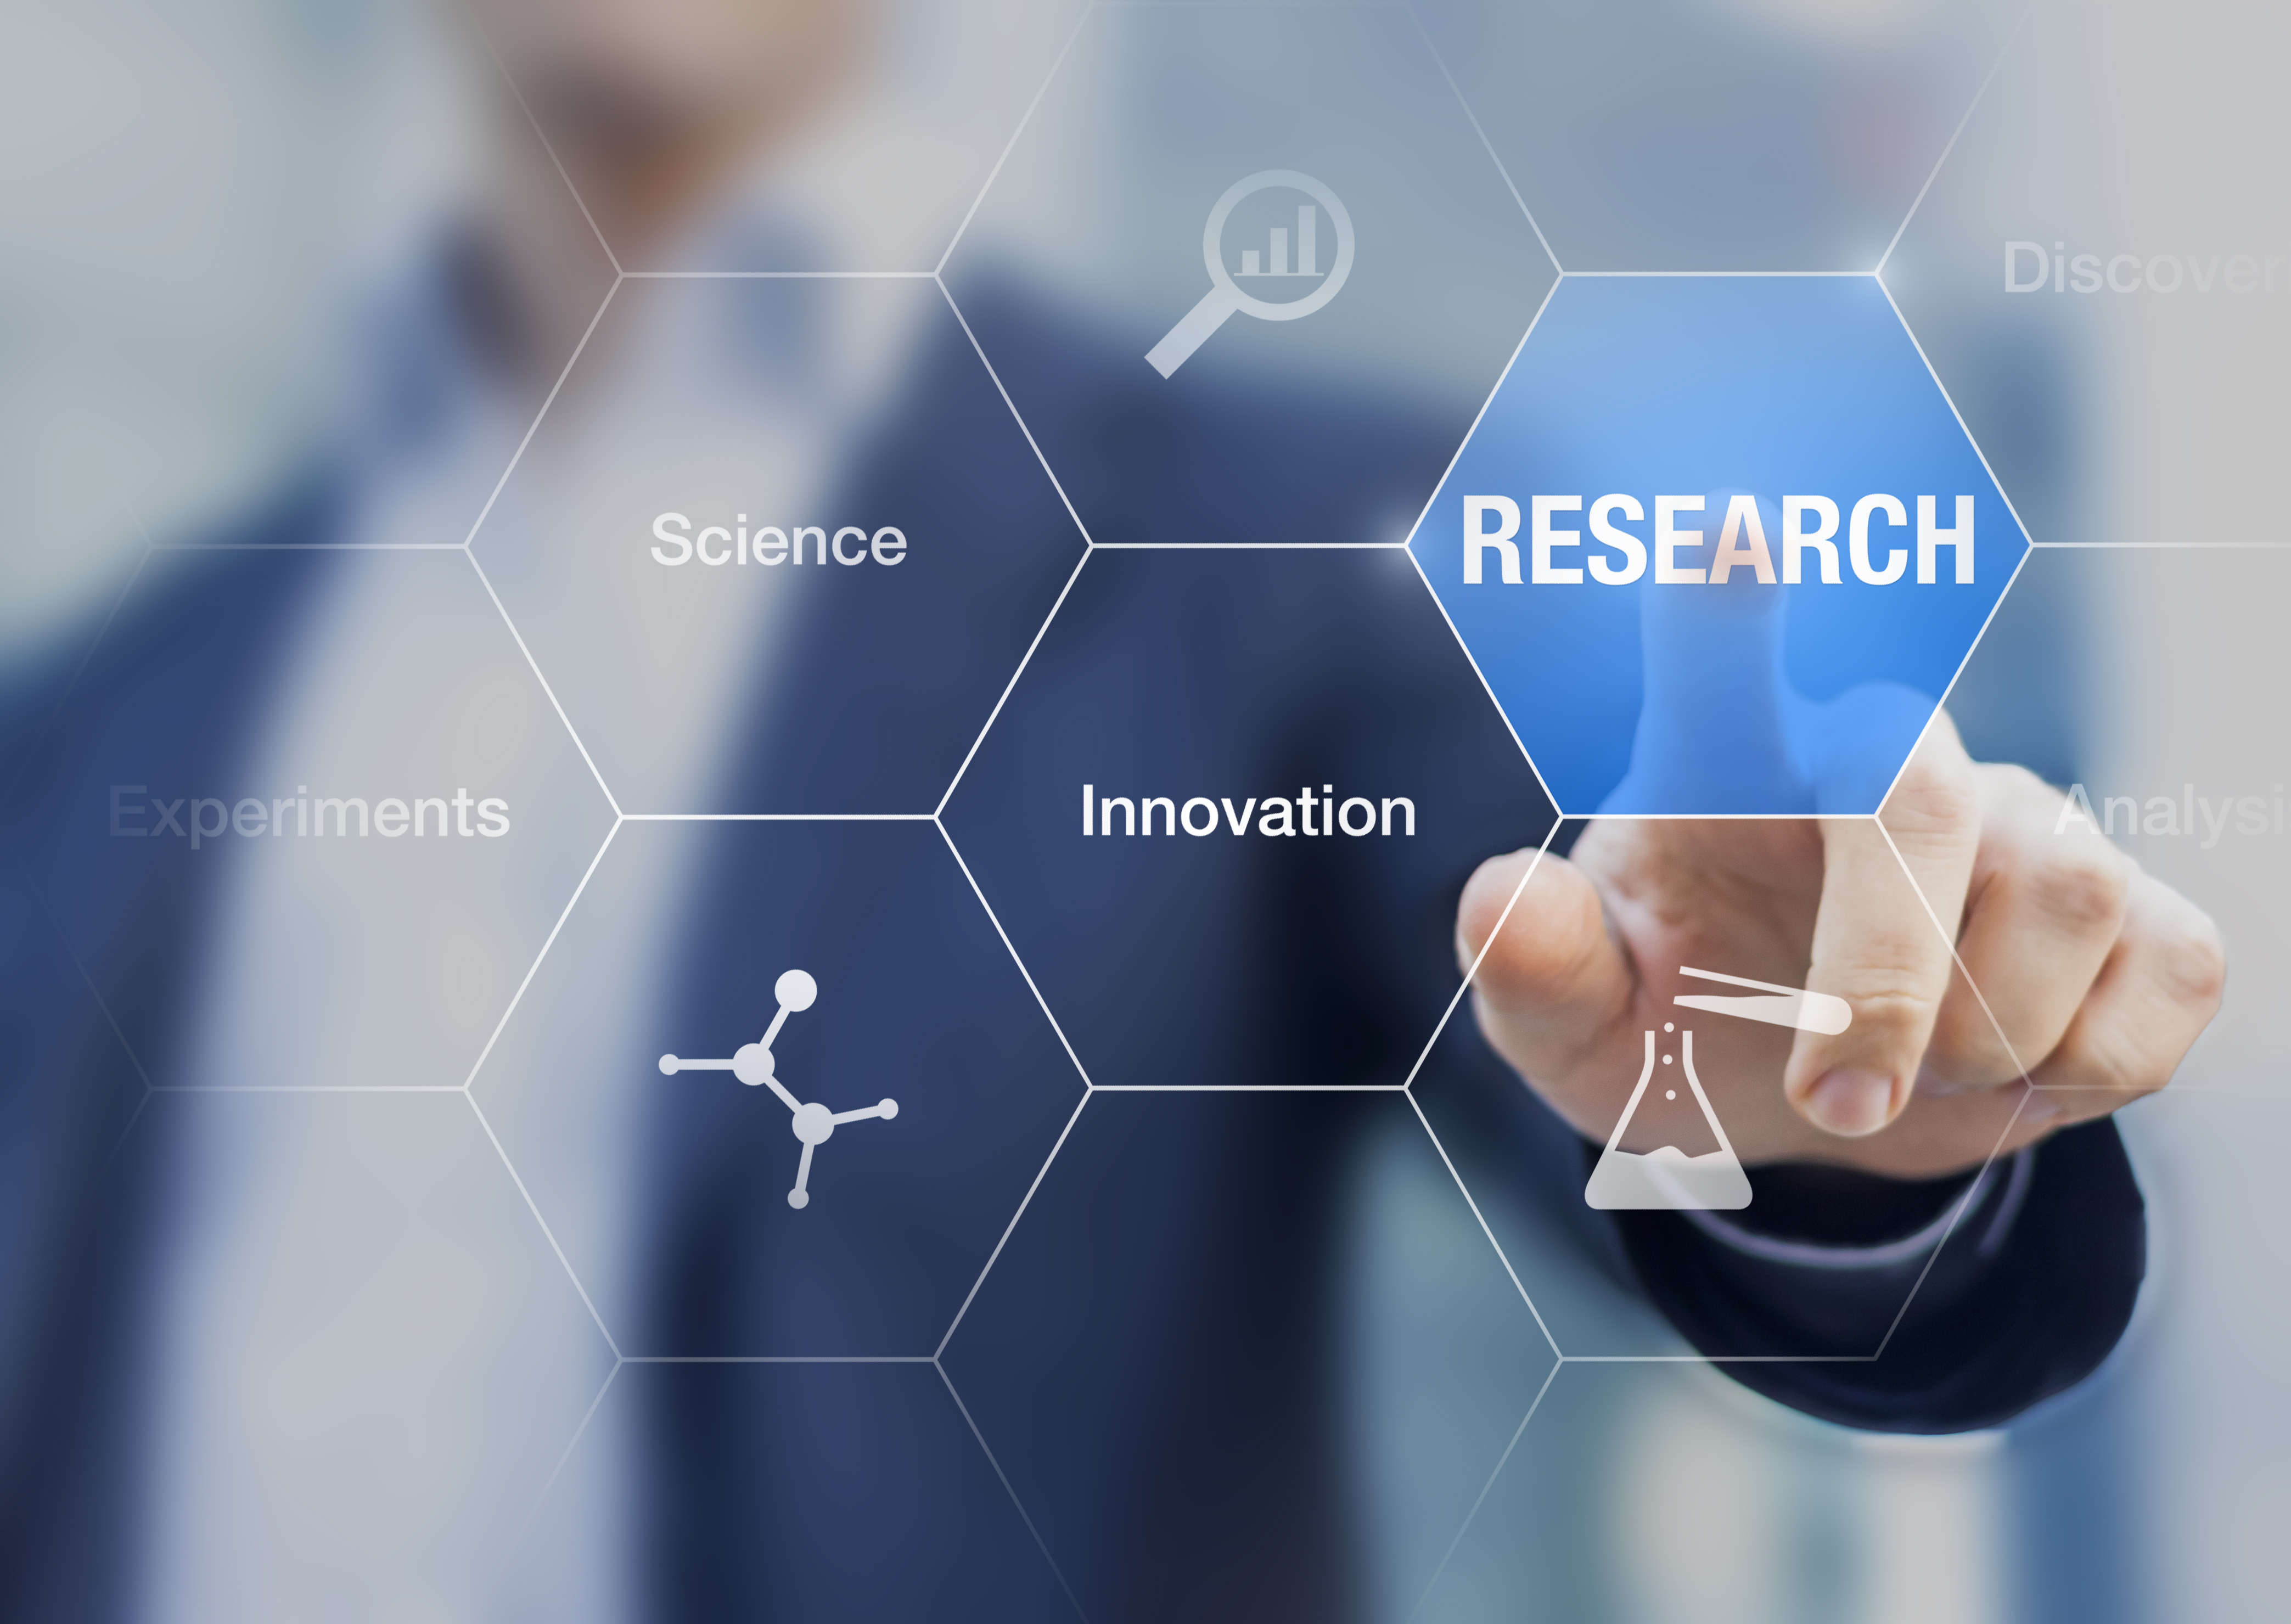 Industry-academia linkage is only 4.7 out of 10 in India, find out the reasons